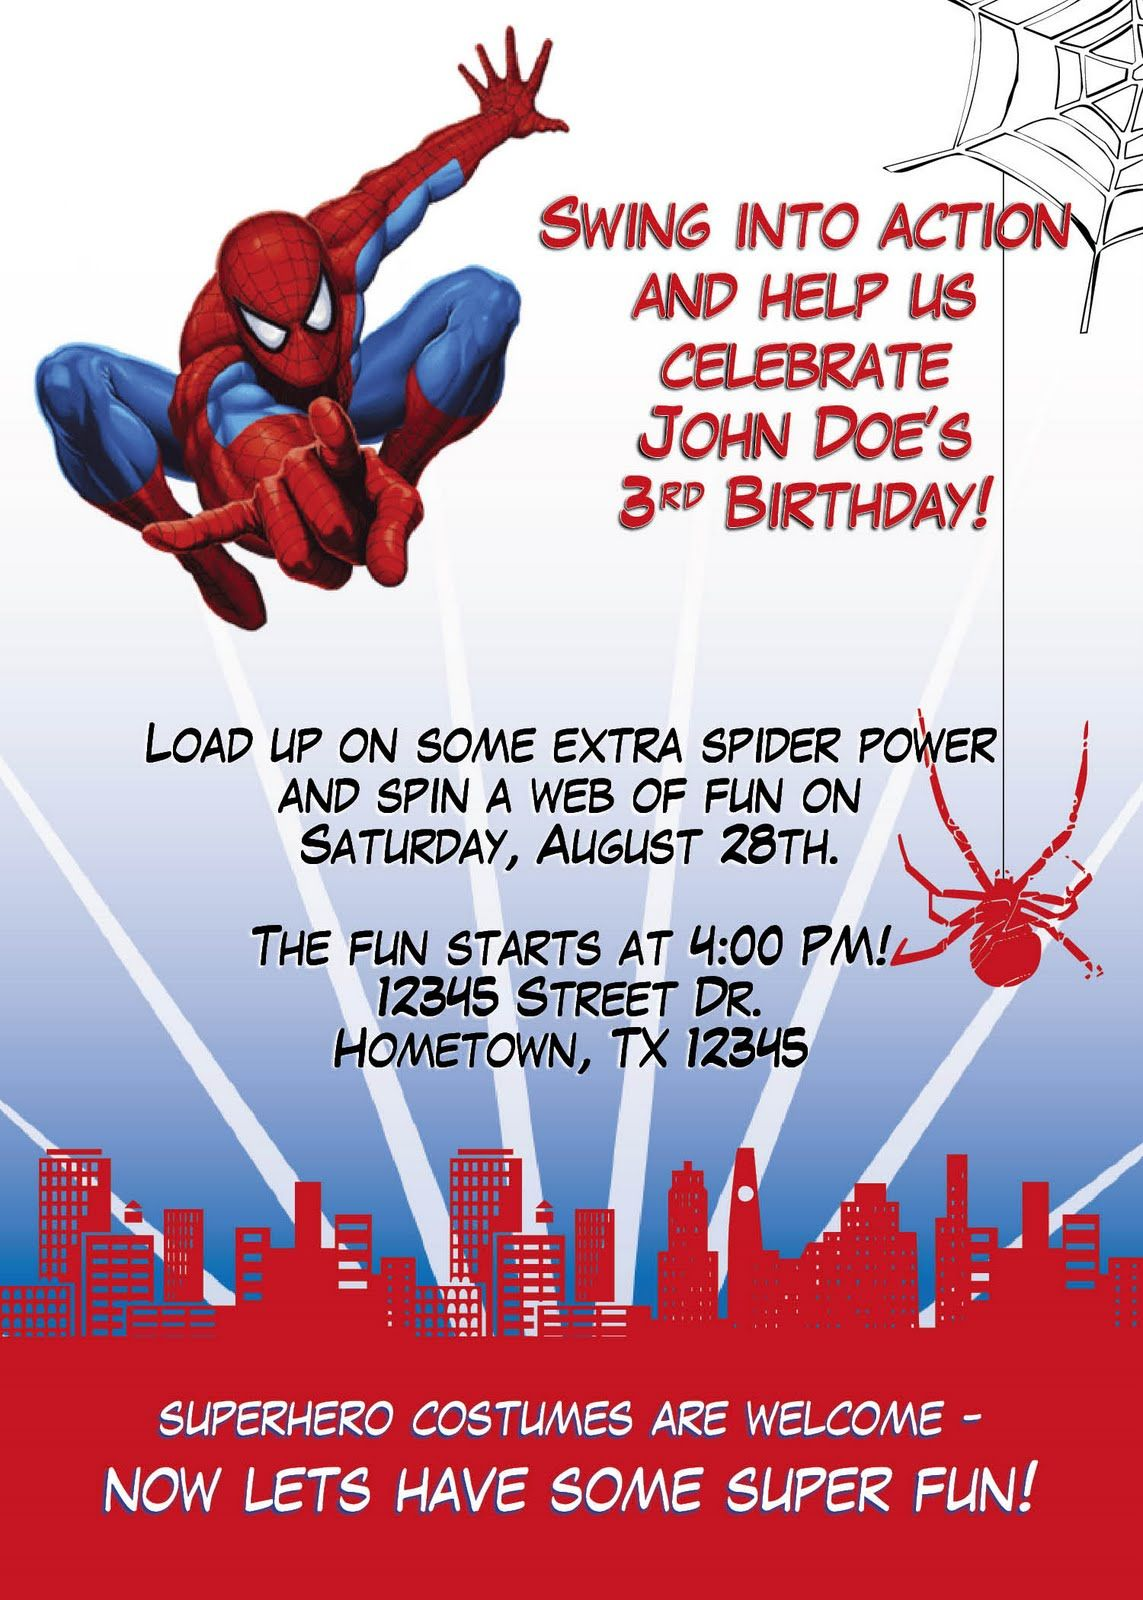 Spiderman birthday party leslie designs stuff spiderman birthday spiderman birthday party leslie designs stuff spiderman birthday party invitation stopboris